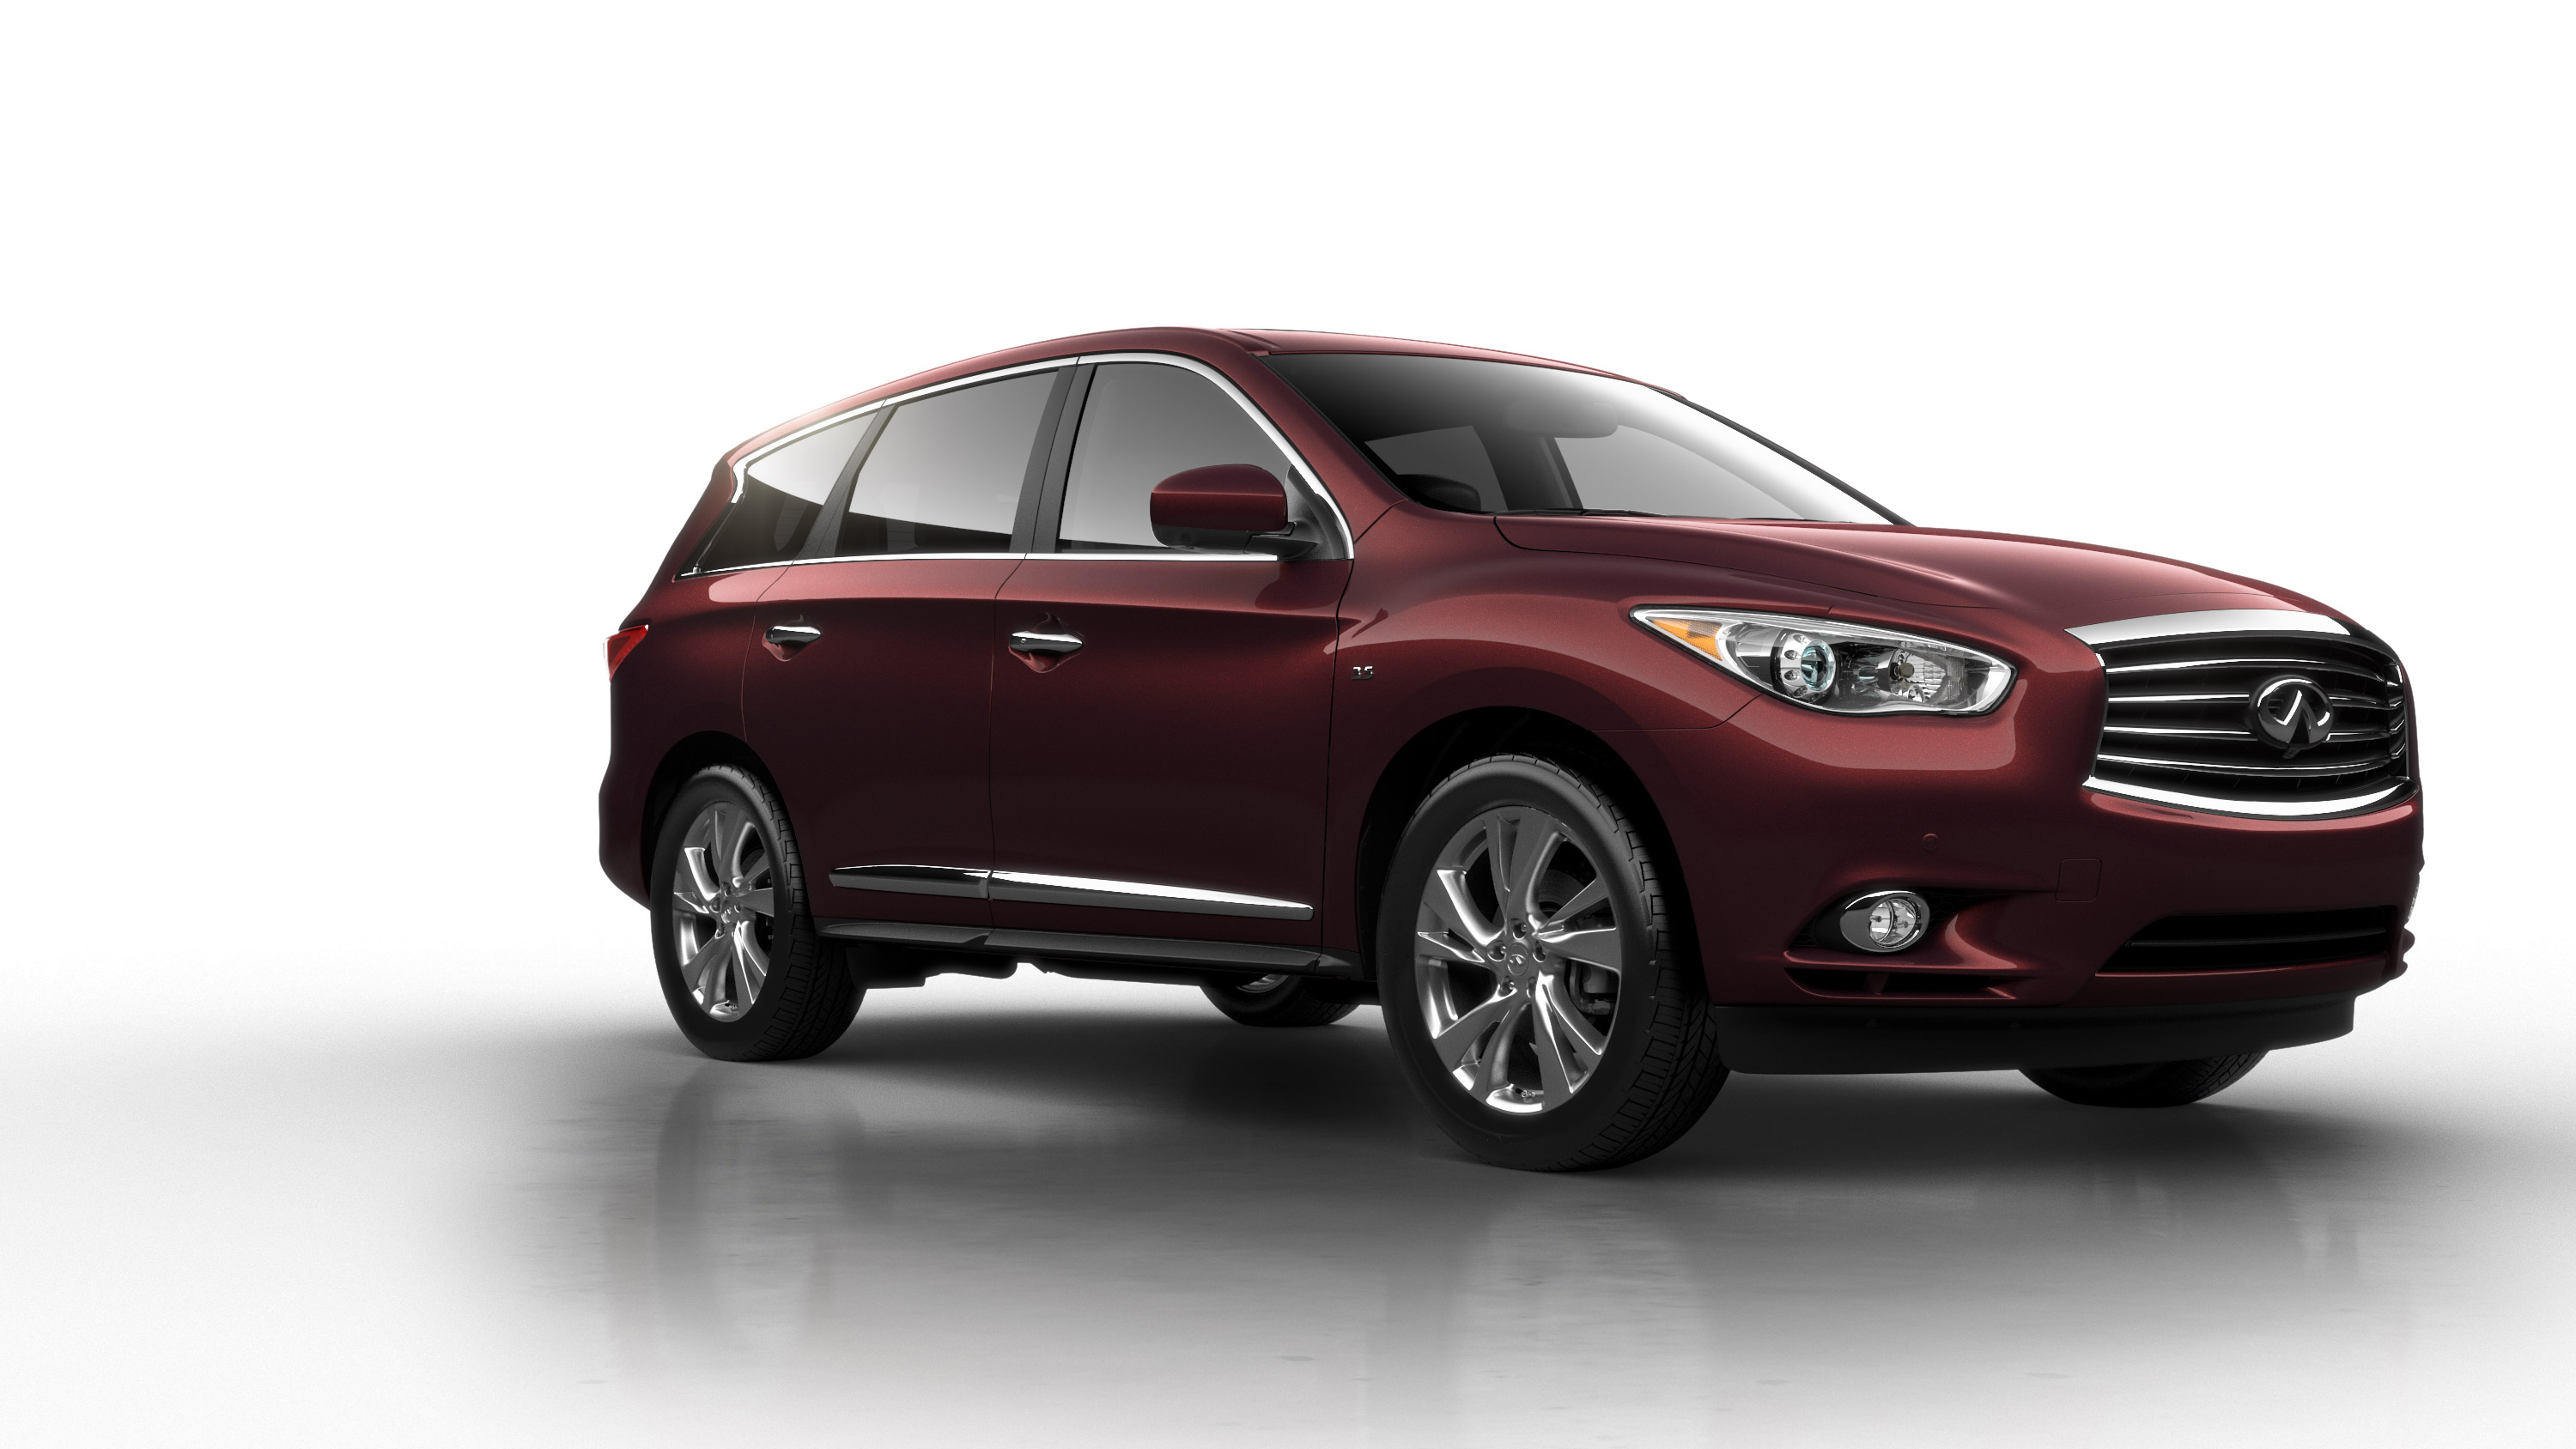 news s gallery photo photos are finally prices infiniti here the infinity cars for us revealed autoevolution u